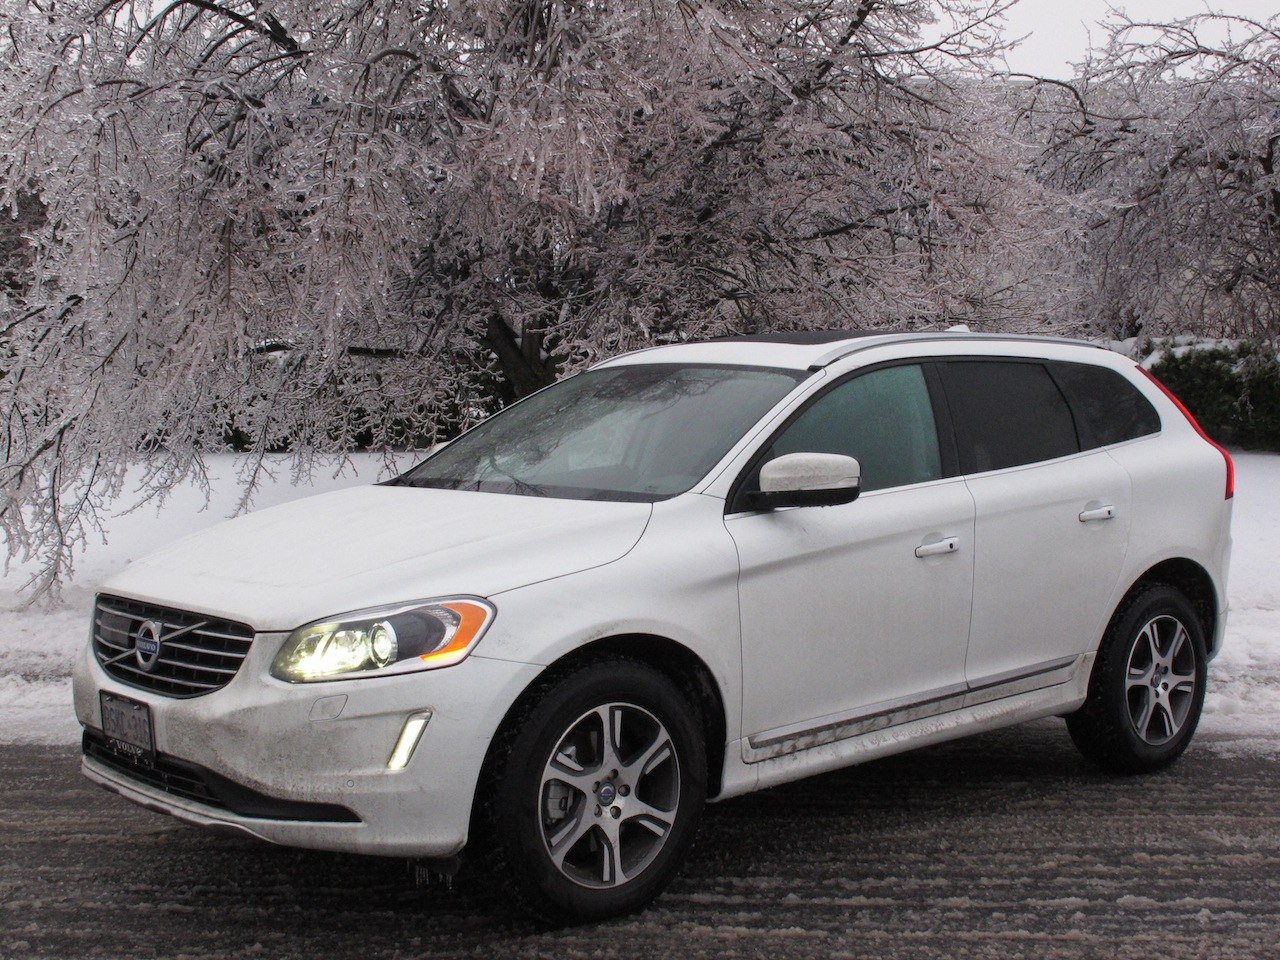 2014 volvo xc60 t6 awd cars photos test drives and. Black Bedroom Furniture Sets. Home Design Ideas